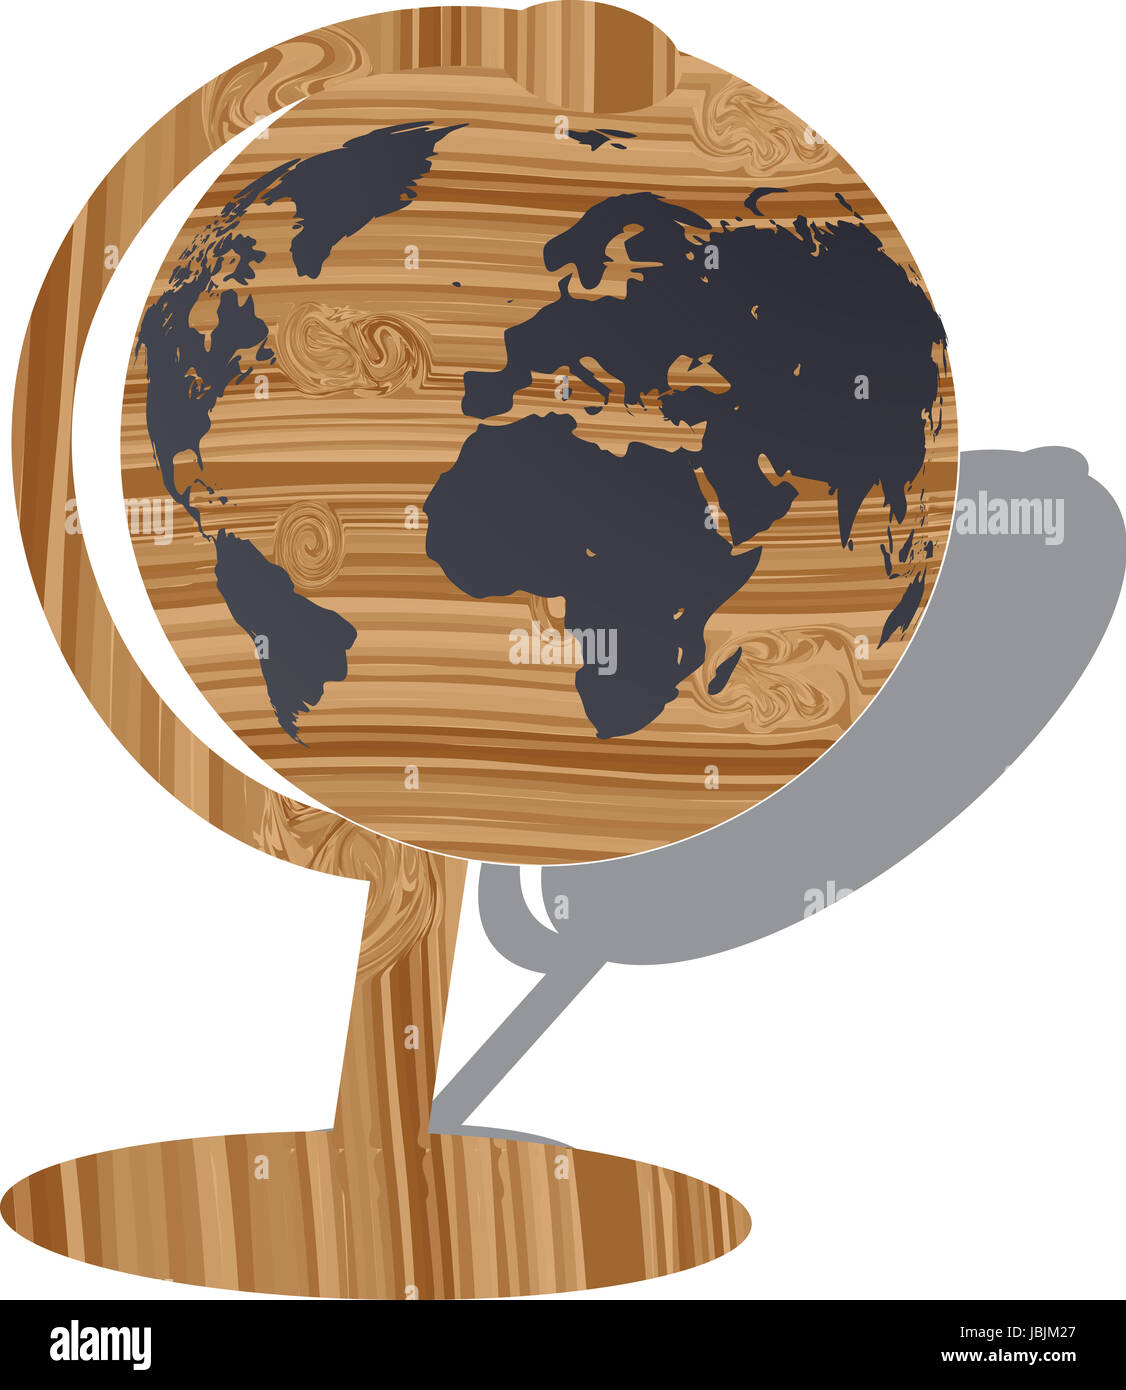 Isolated wooden world map globe vector illustration stock photo isolated wooden world map globe vector illustration gumiabroncs Images